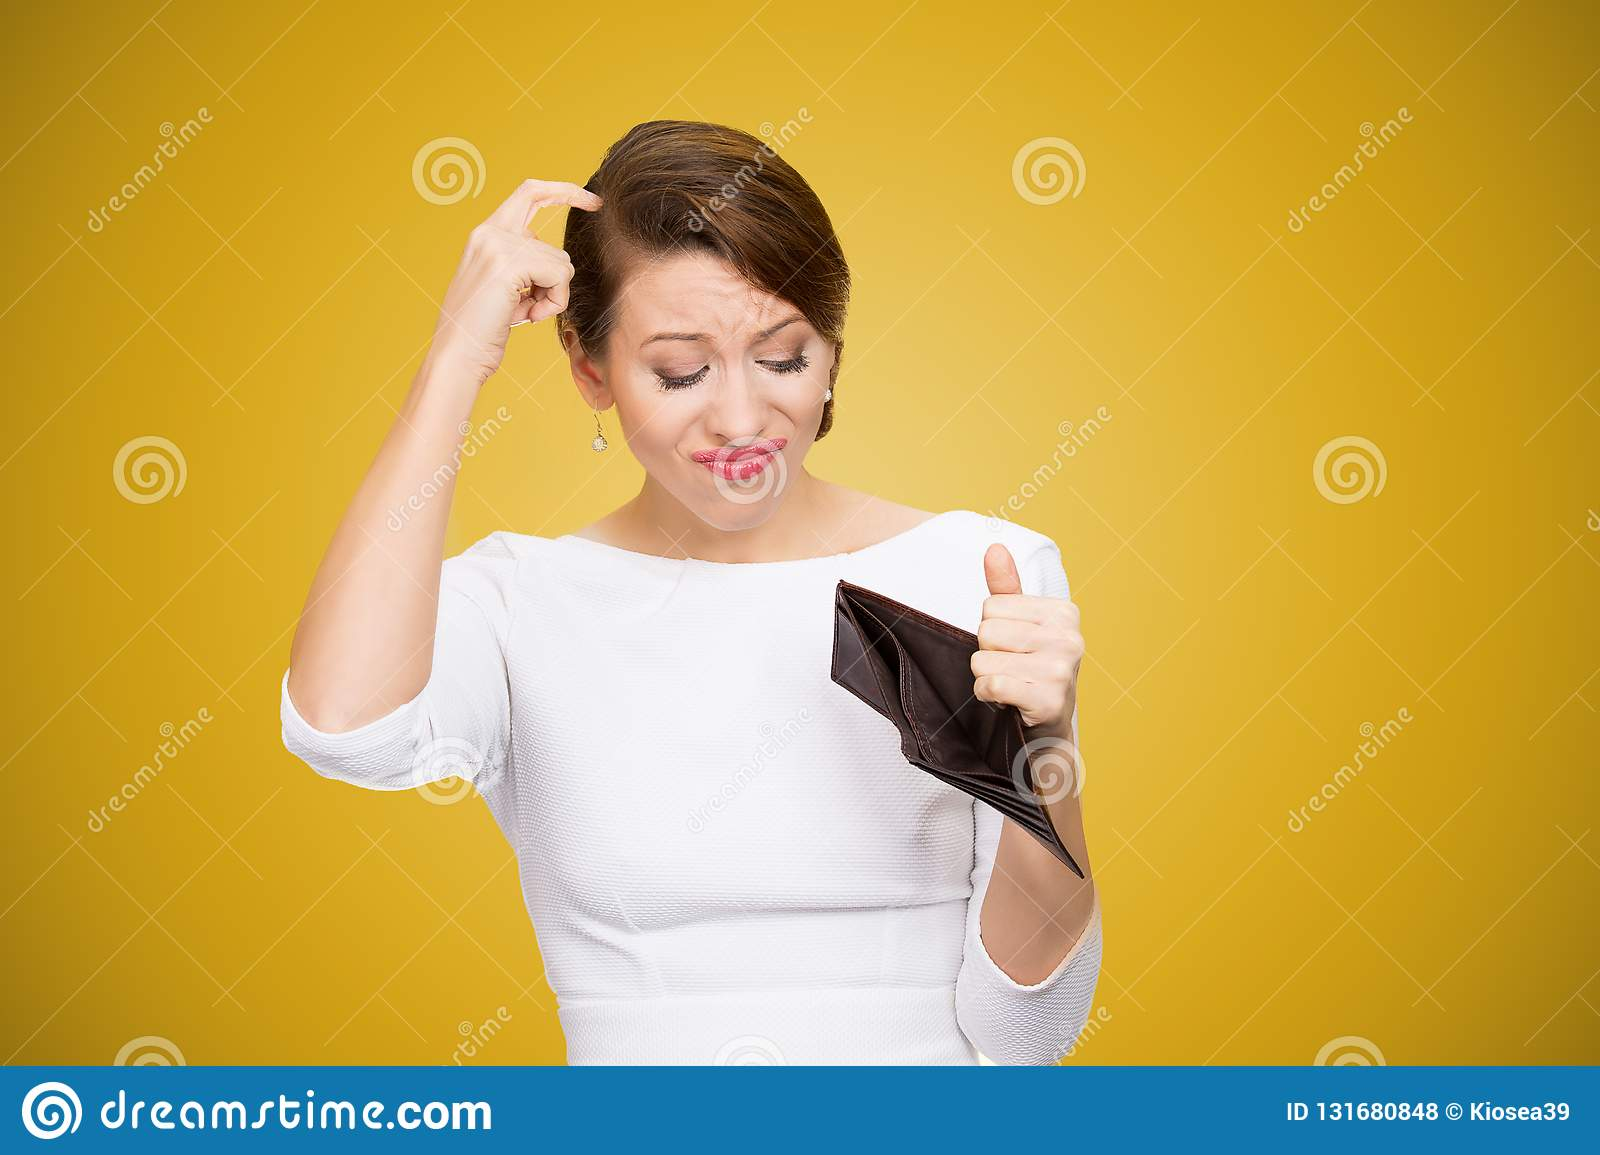 Woman scratching in head and looking inside of empty wallet having no money